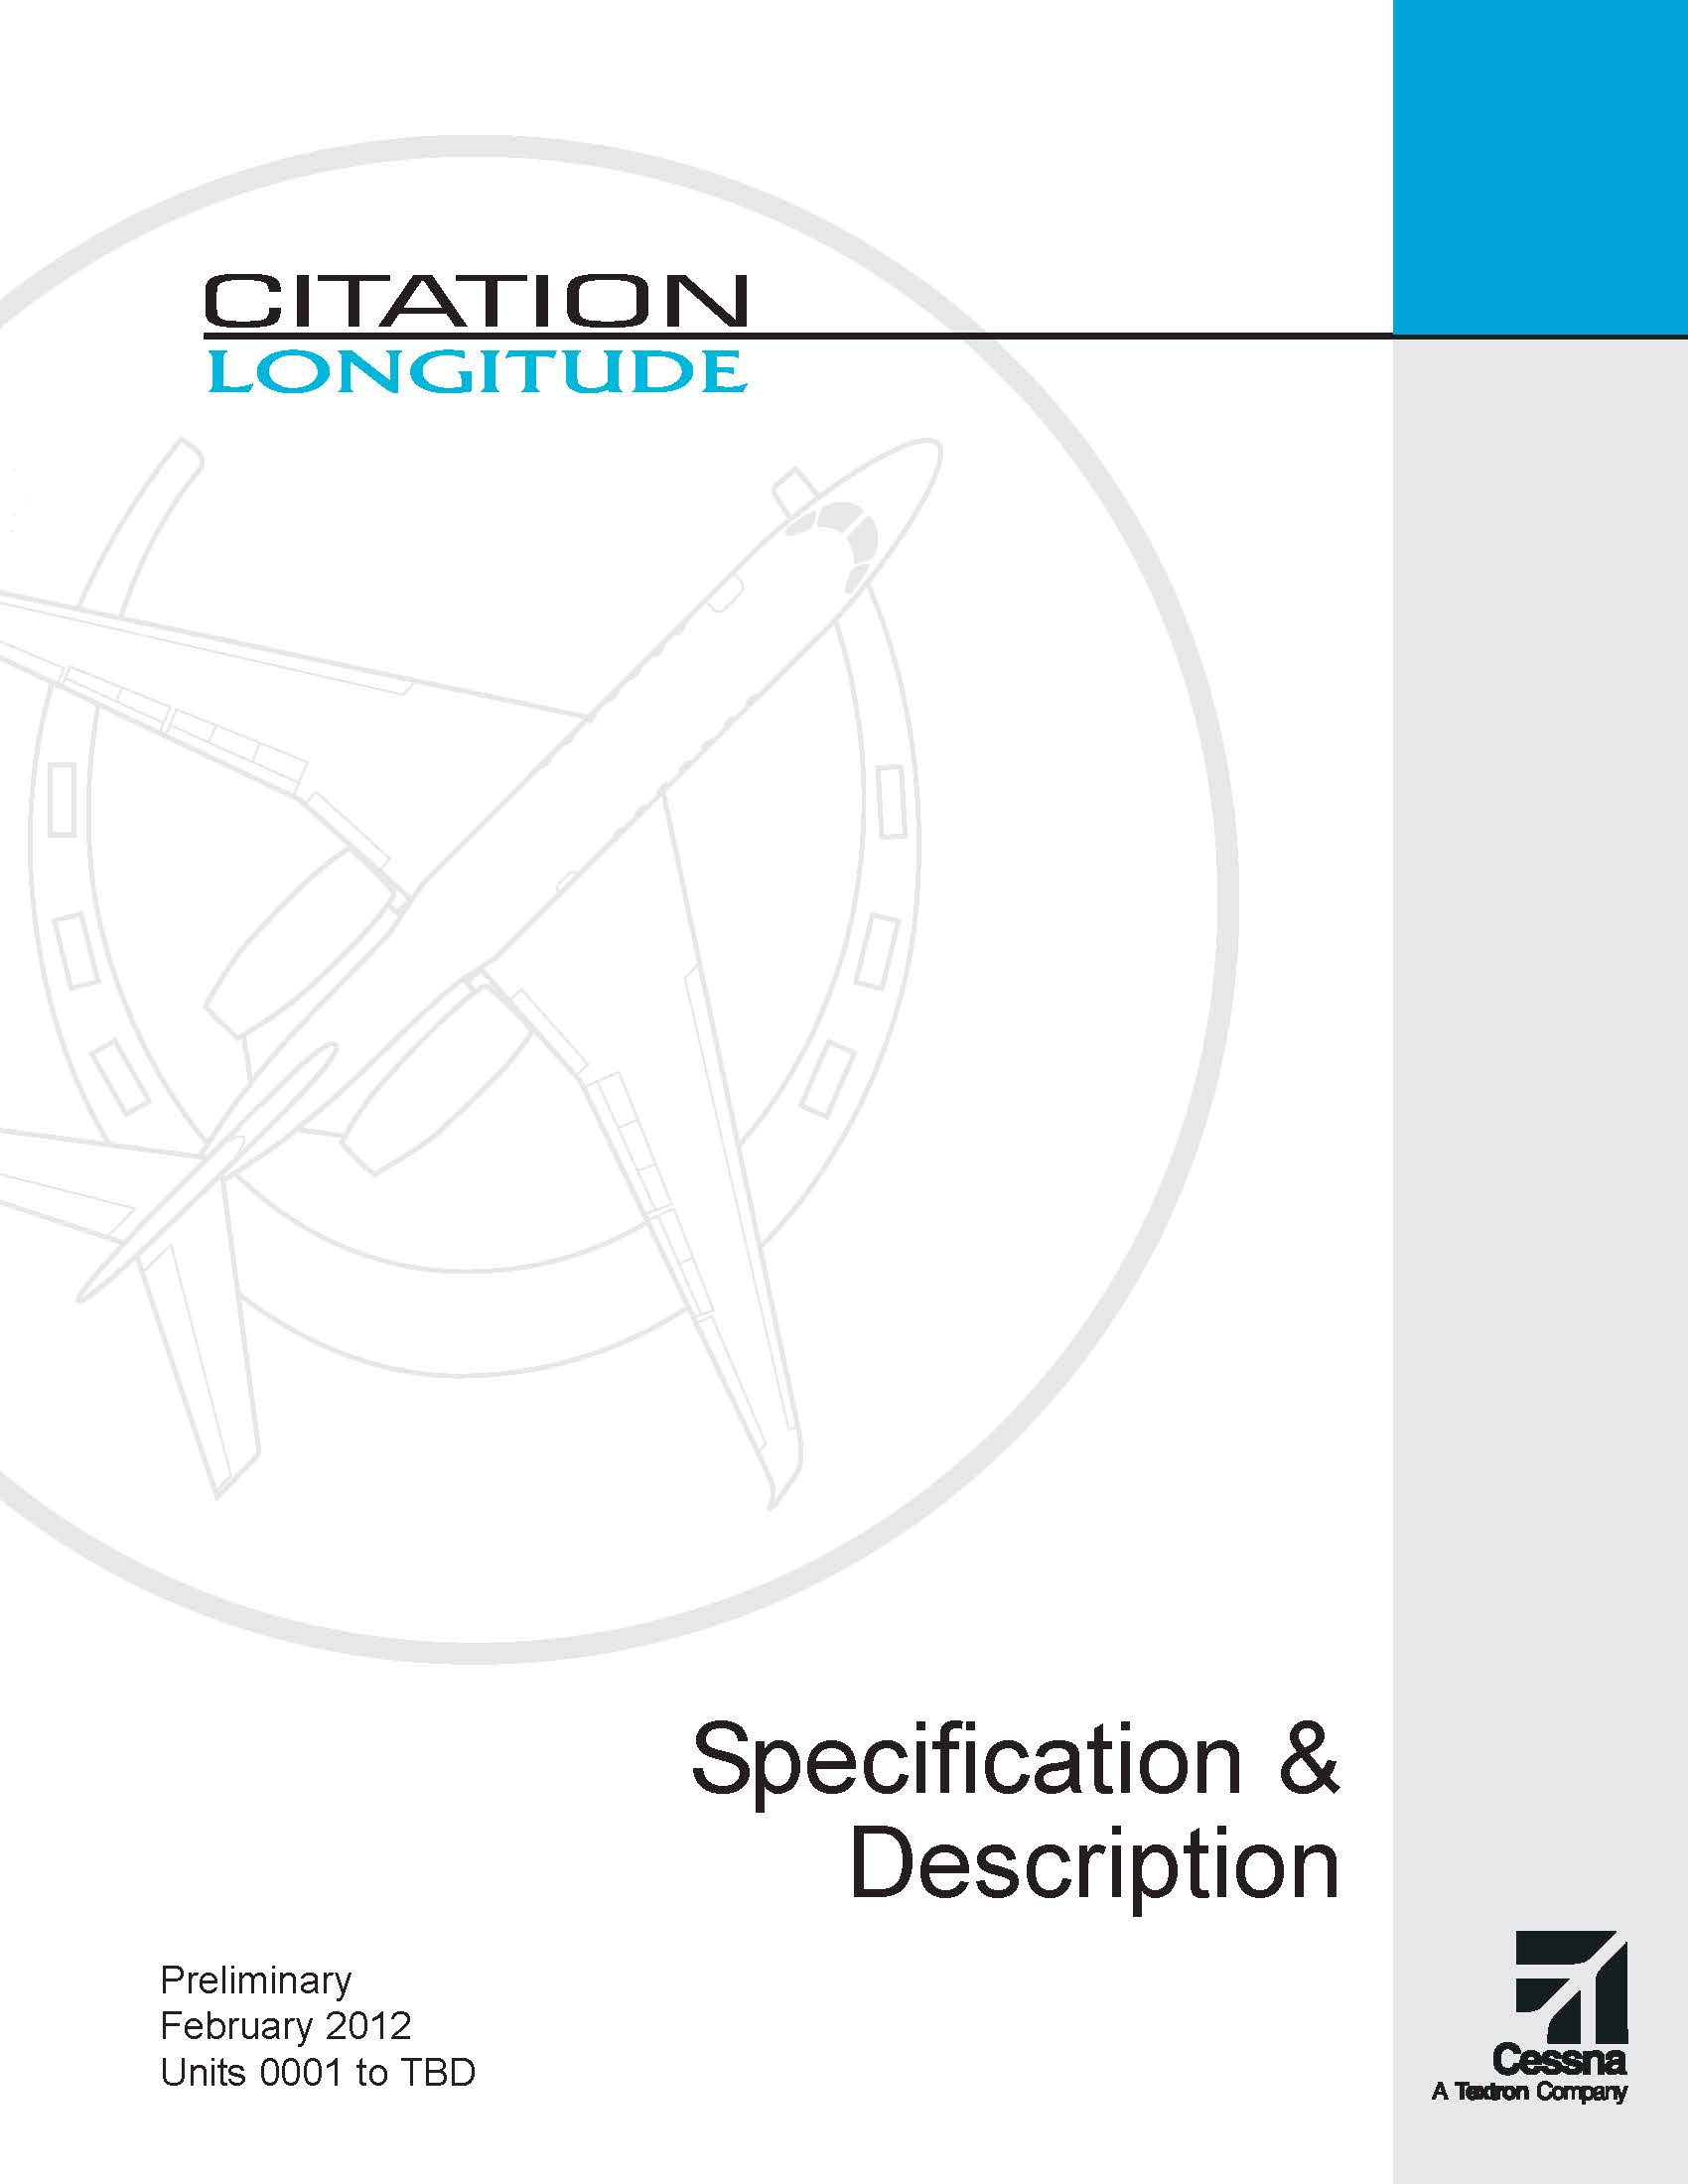 Citation Longitude spec and description electronic brochure